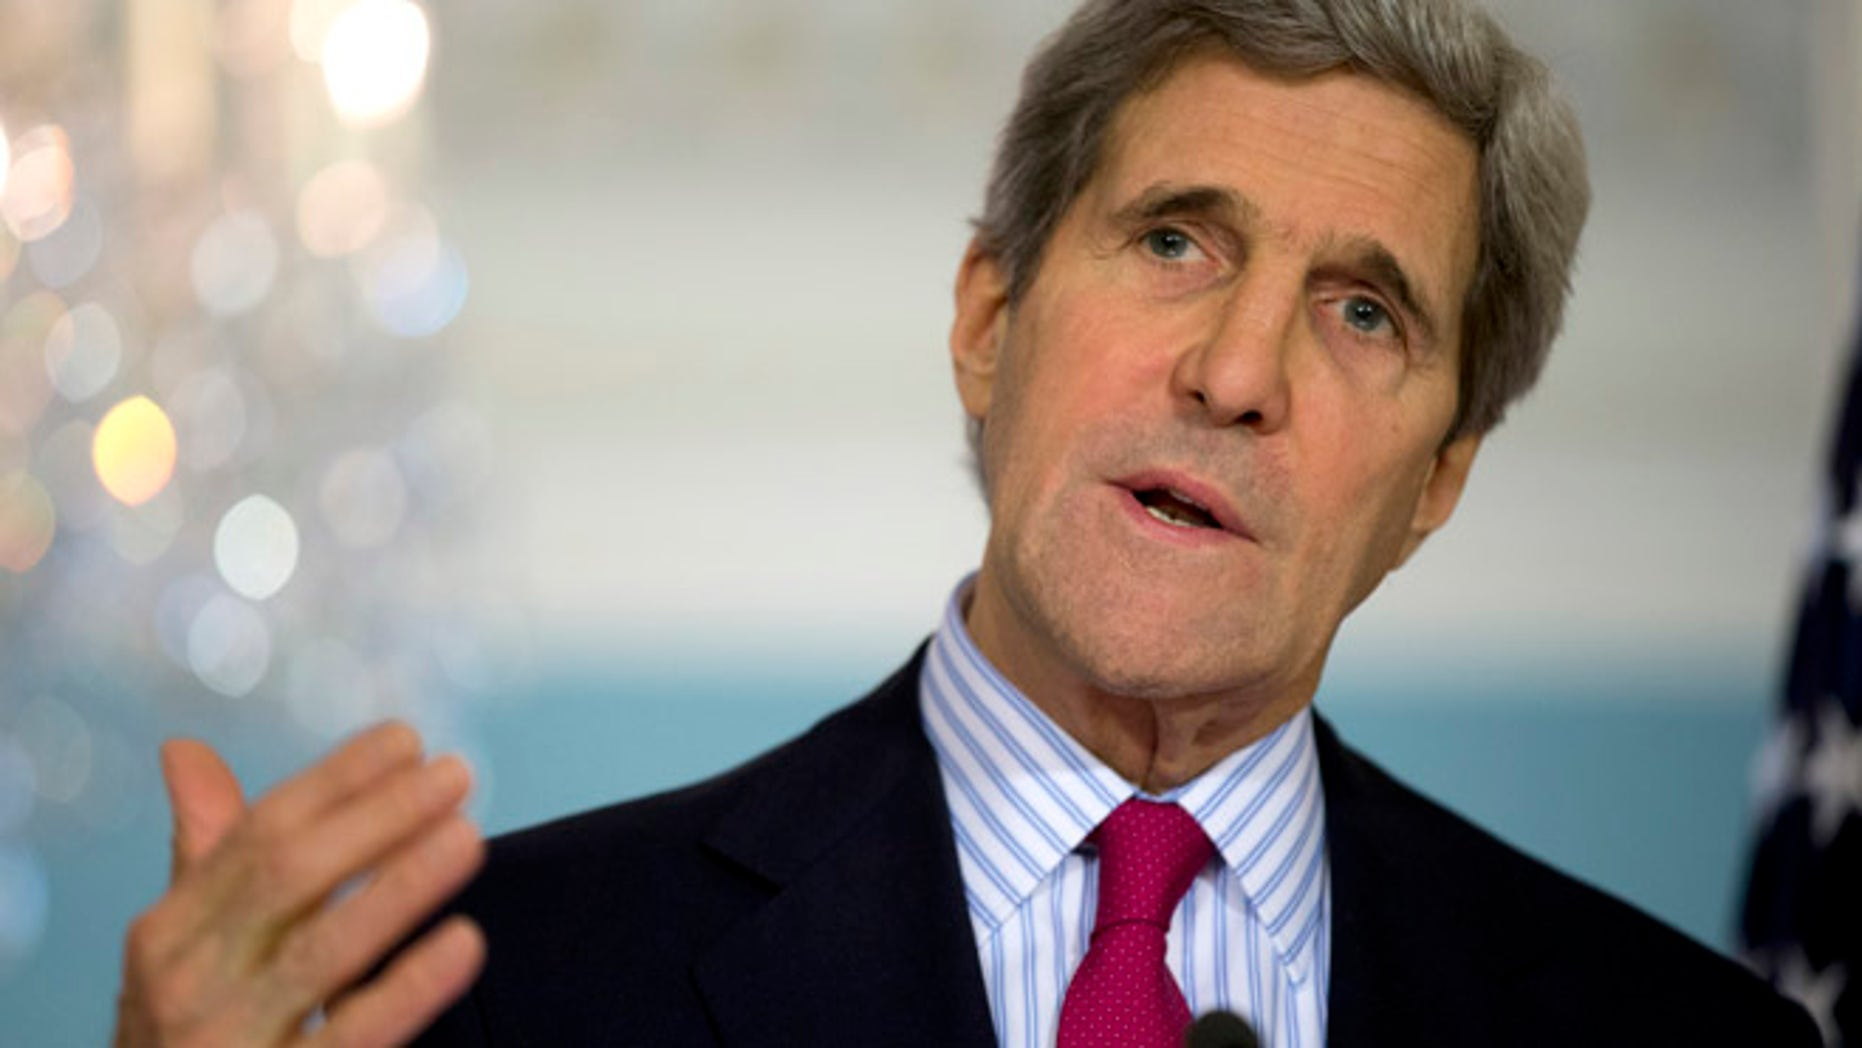 FILE: Feb. 28, 2014: Secretary of State John Kerry at the State Department in Washington, D.C.